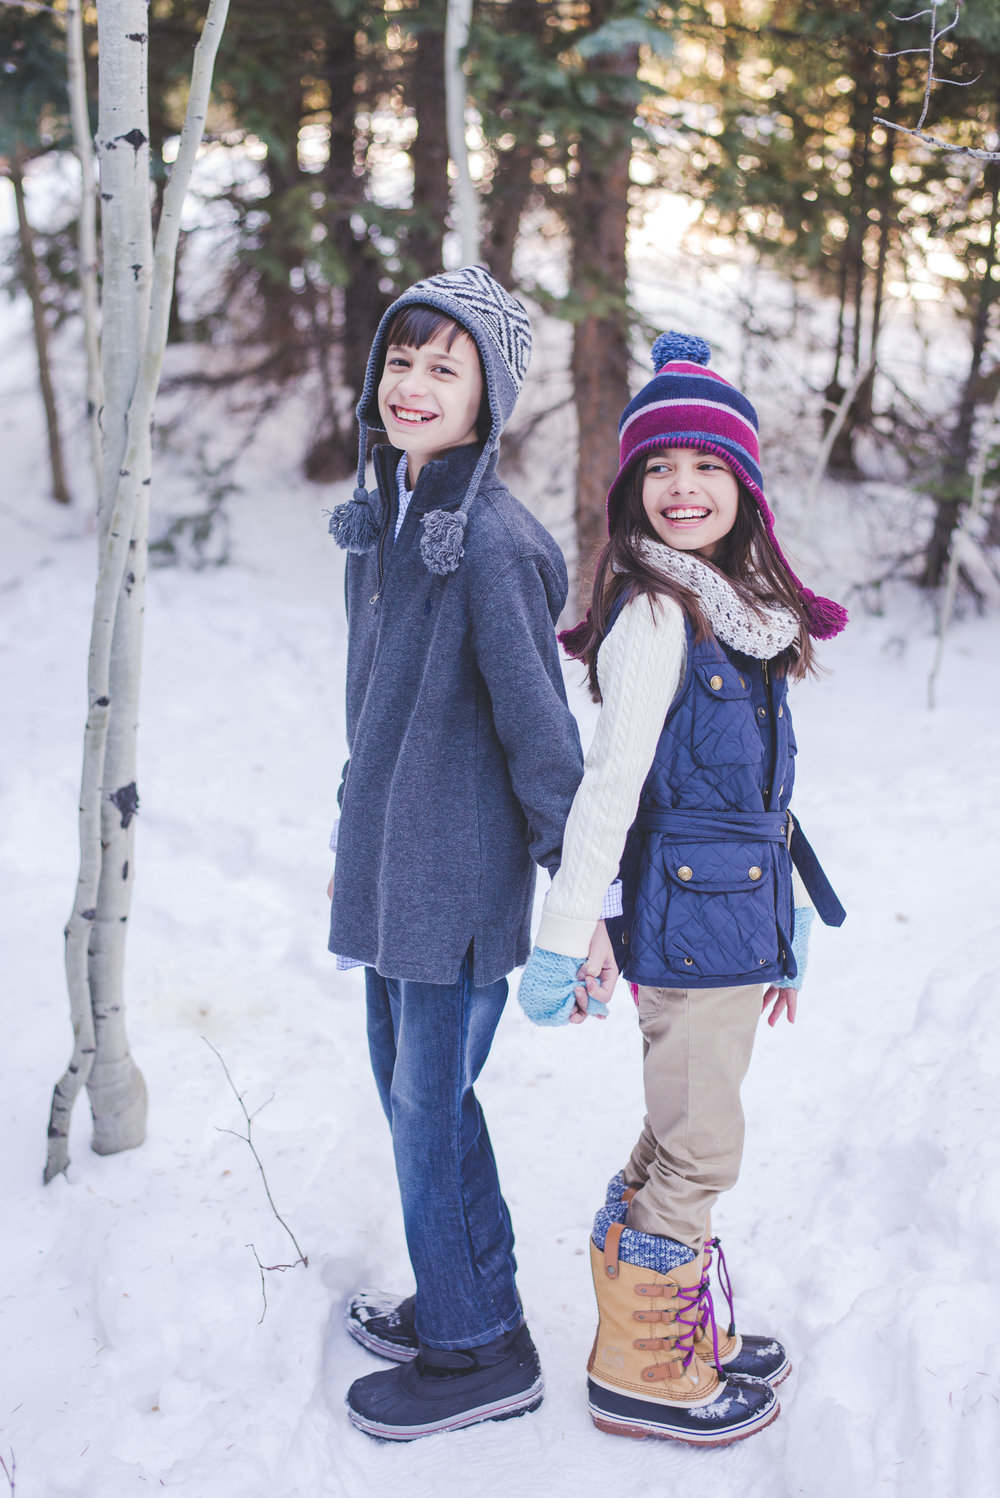 winter style for these kids is on point! cute hats, winter boots, knit gloves and smiles for days! even in the middle of winter, you can still dress for success for your family photos!